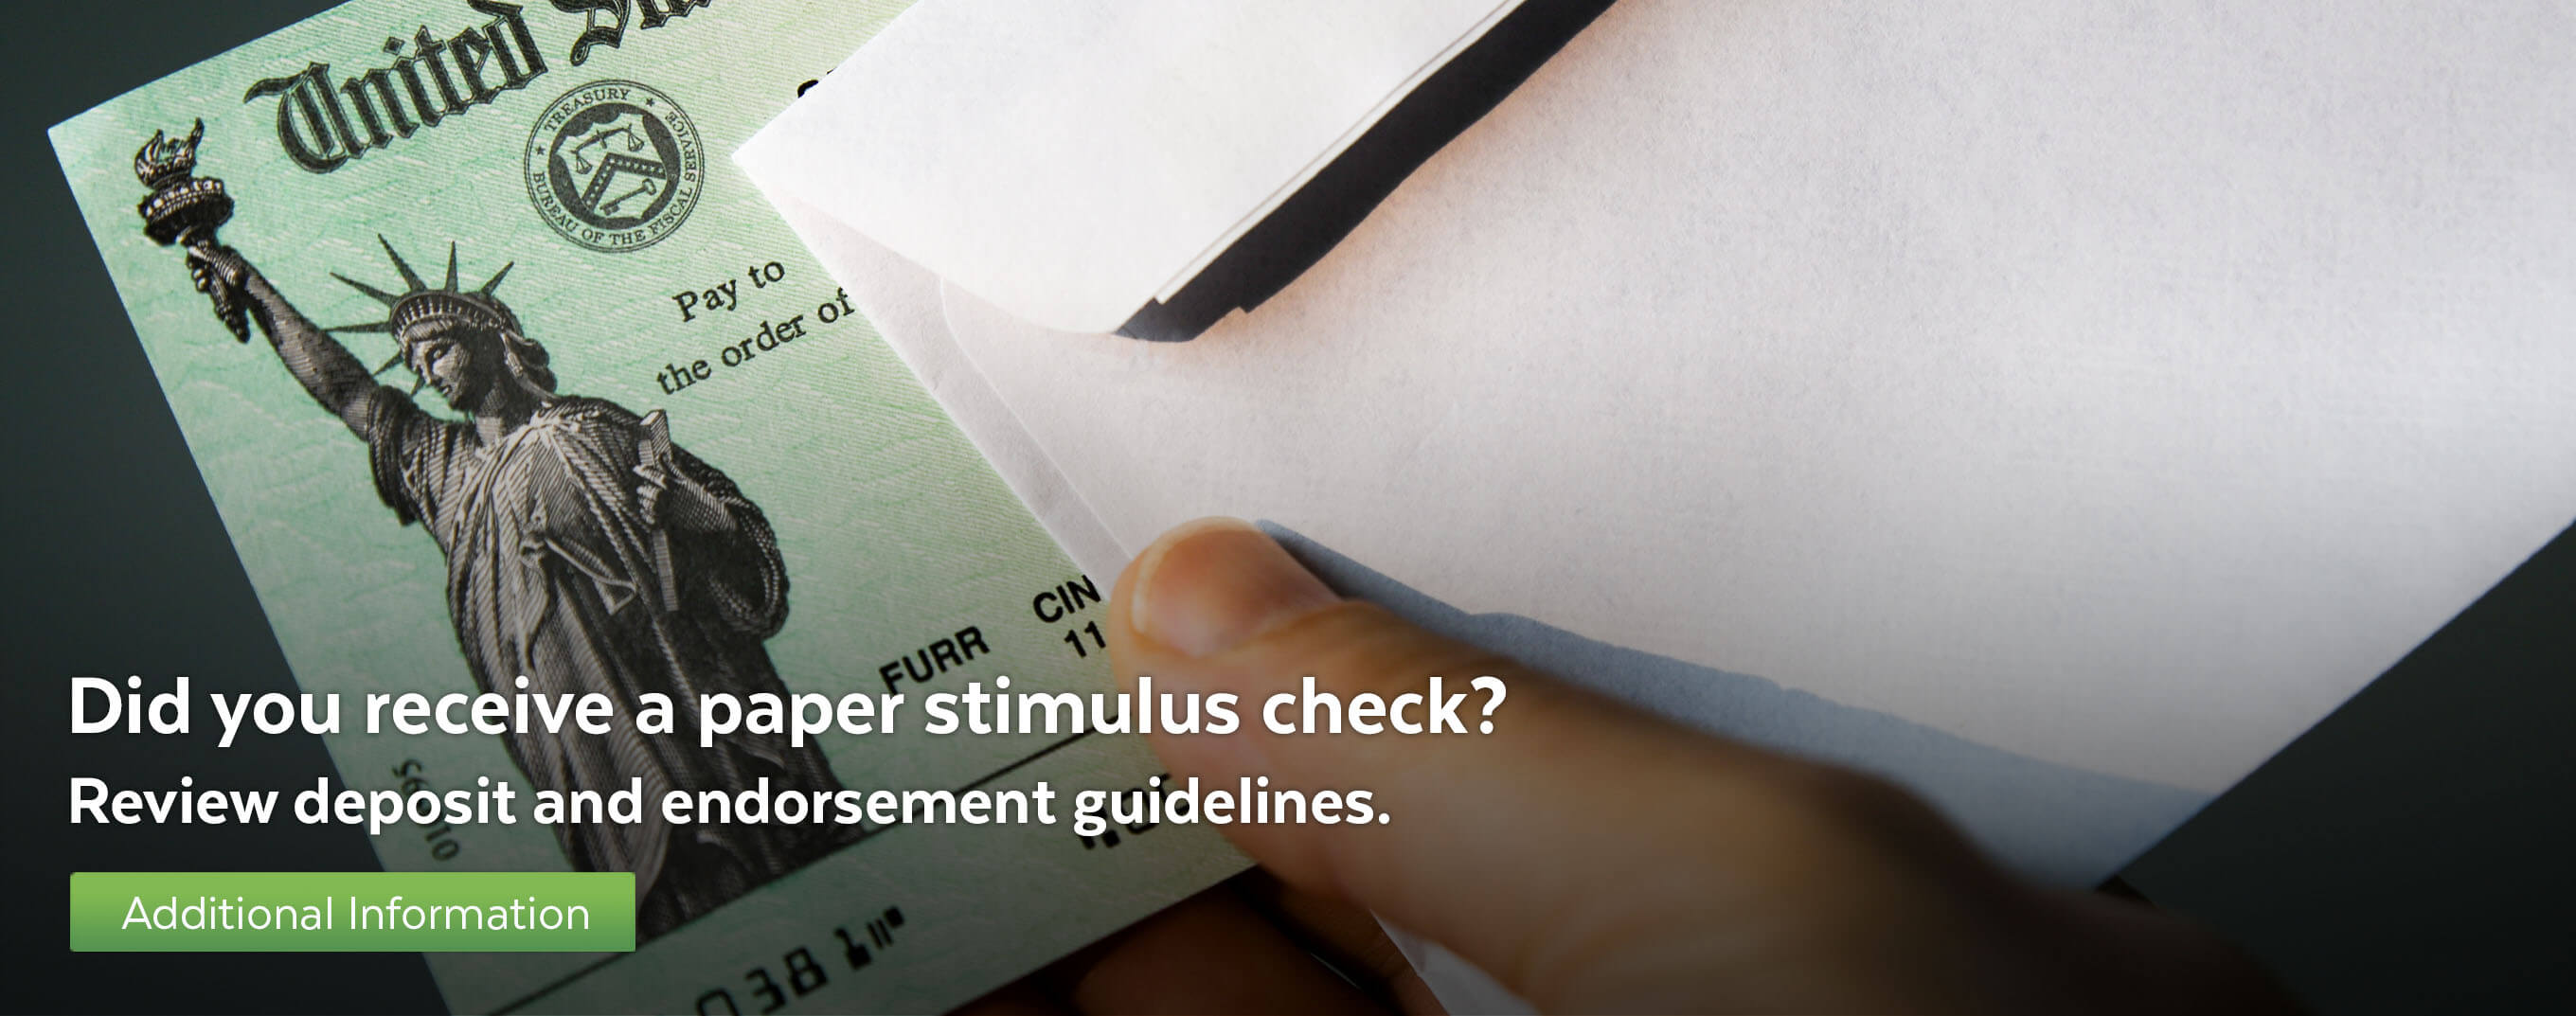 Did you receive a paper stimulus check? Review deposit and endorsement guidelines.